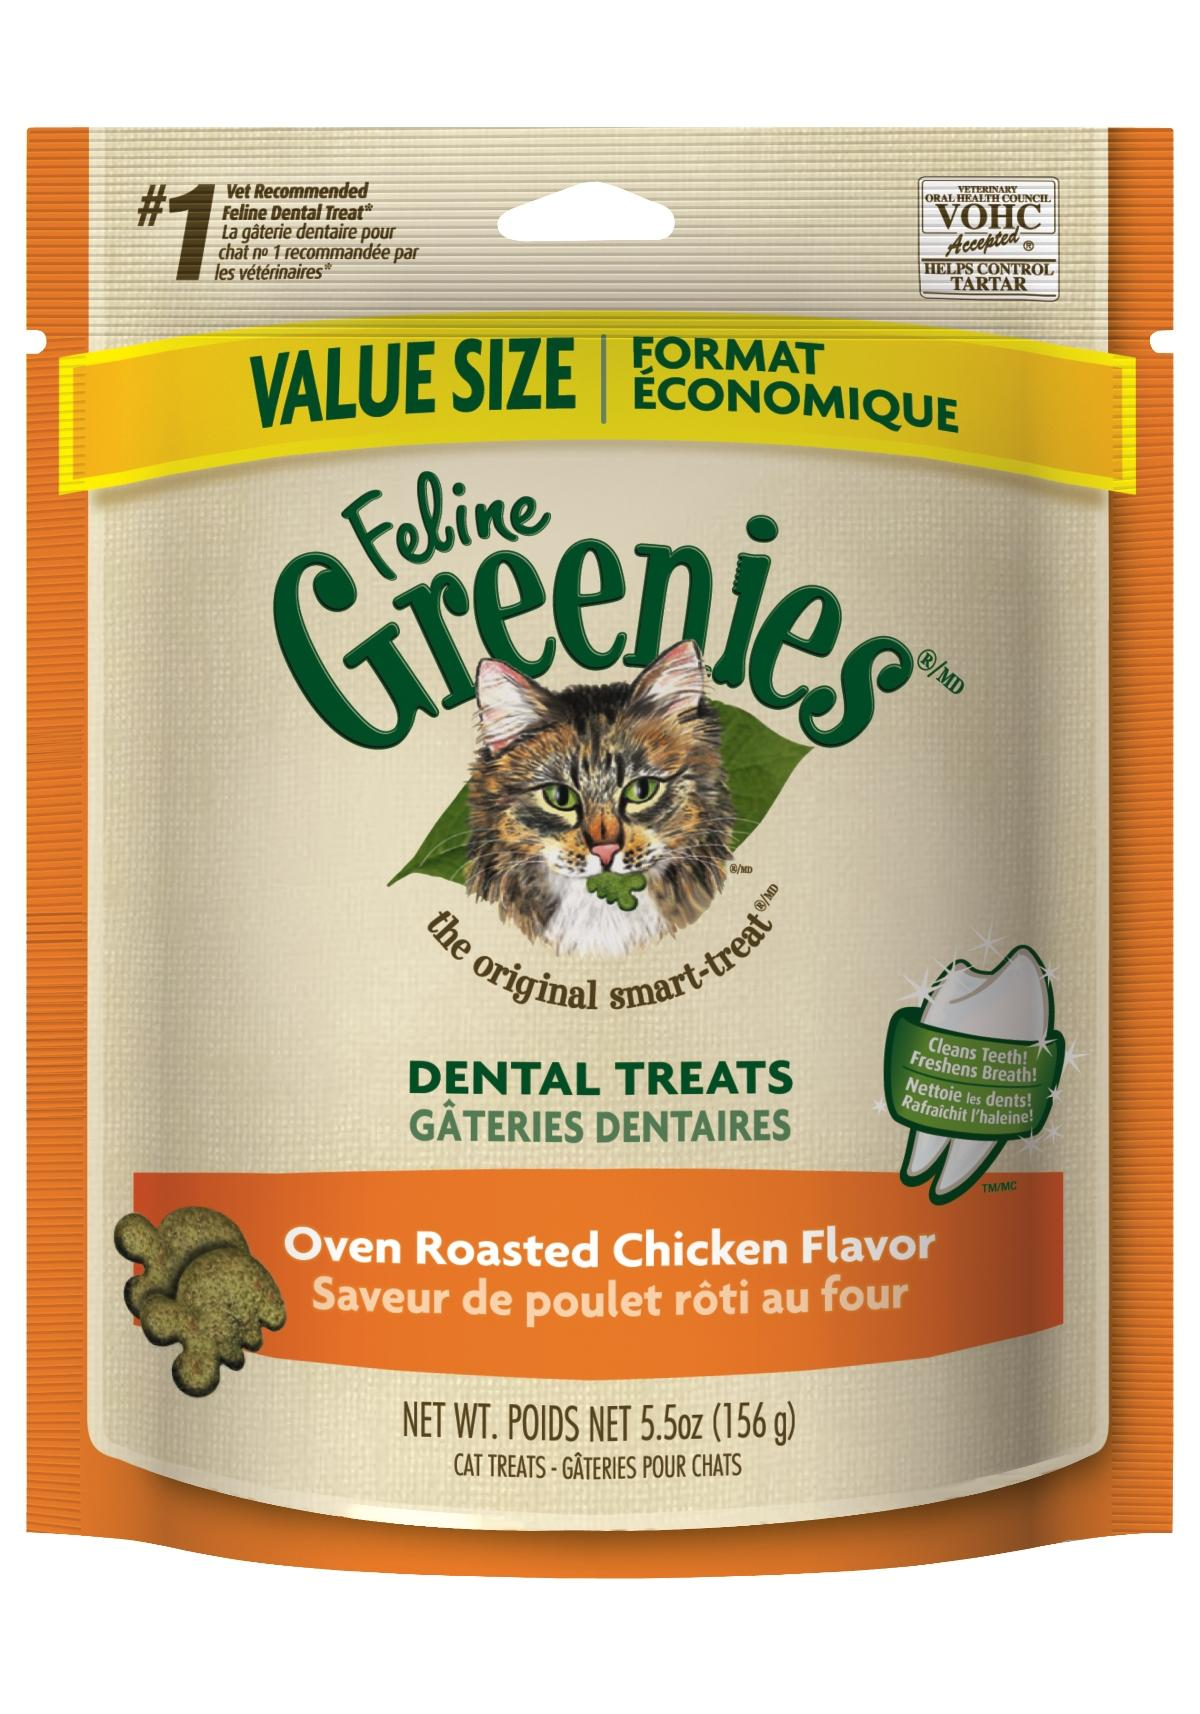 Dental Treats Oven Roasted Chicken Flavor thumbnail3